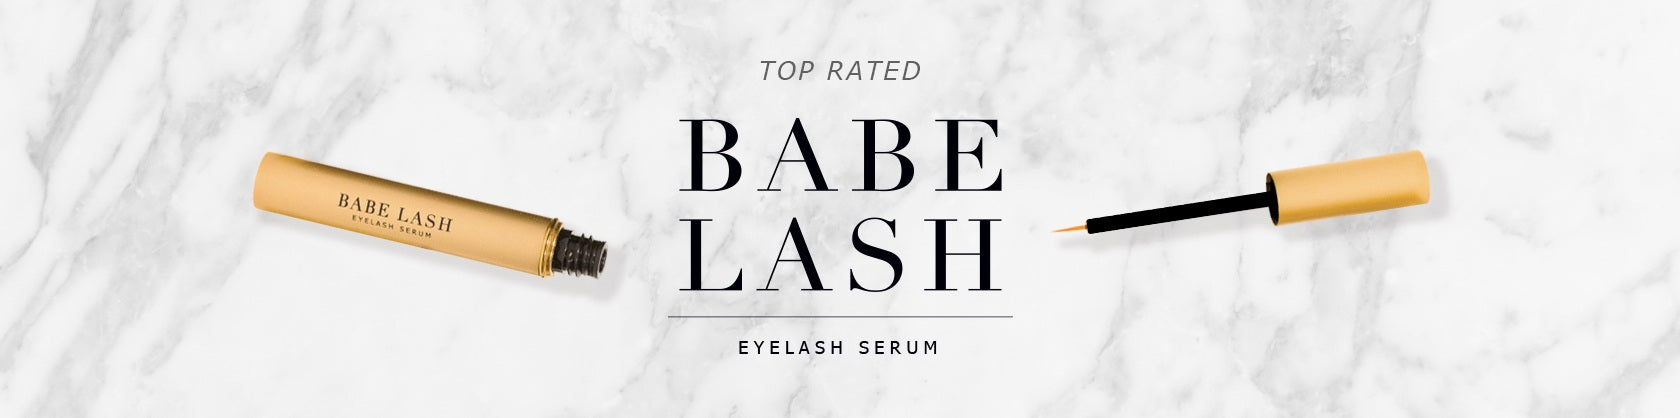 top rated babe lash serum with opened serum product